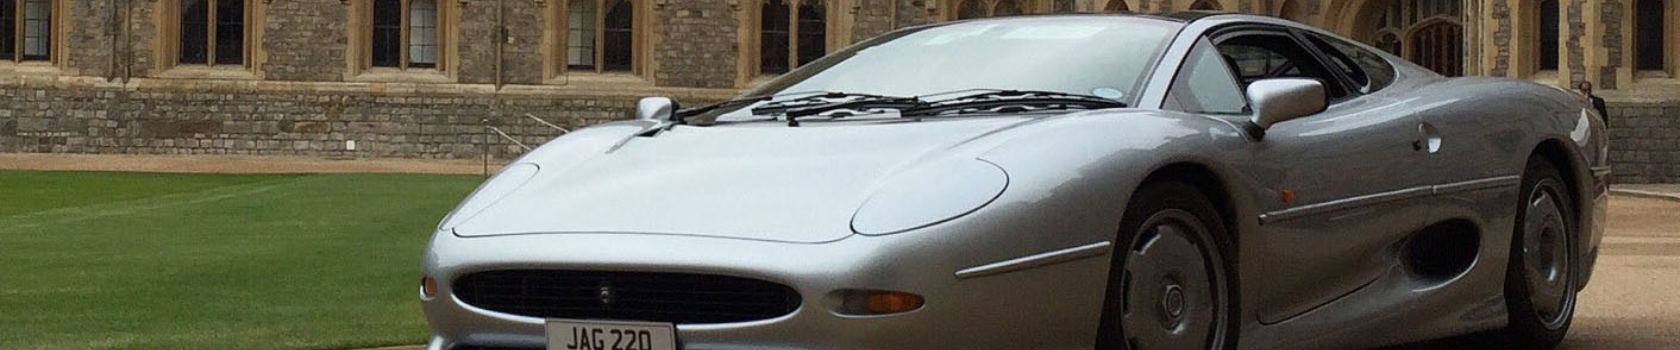 Jaguar Xj220 Wide